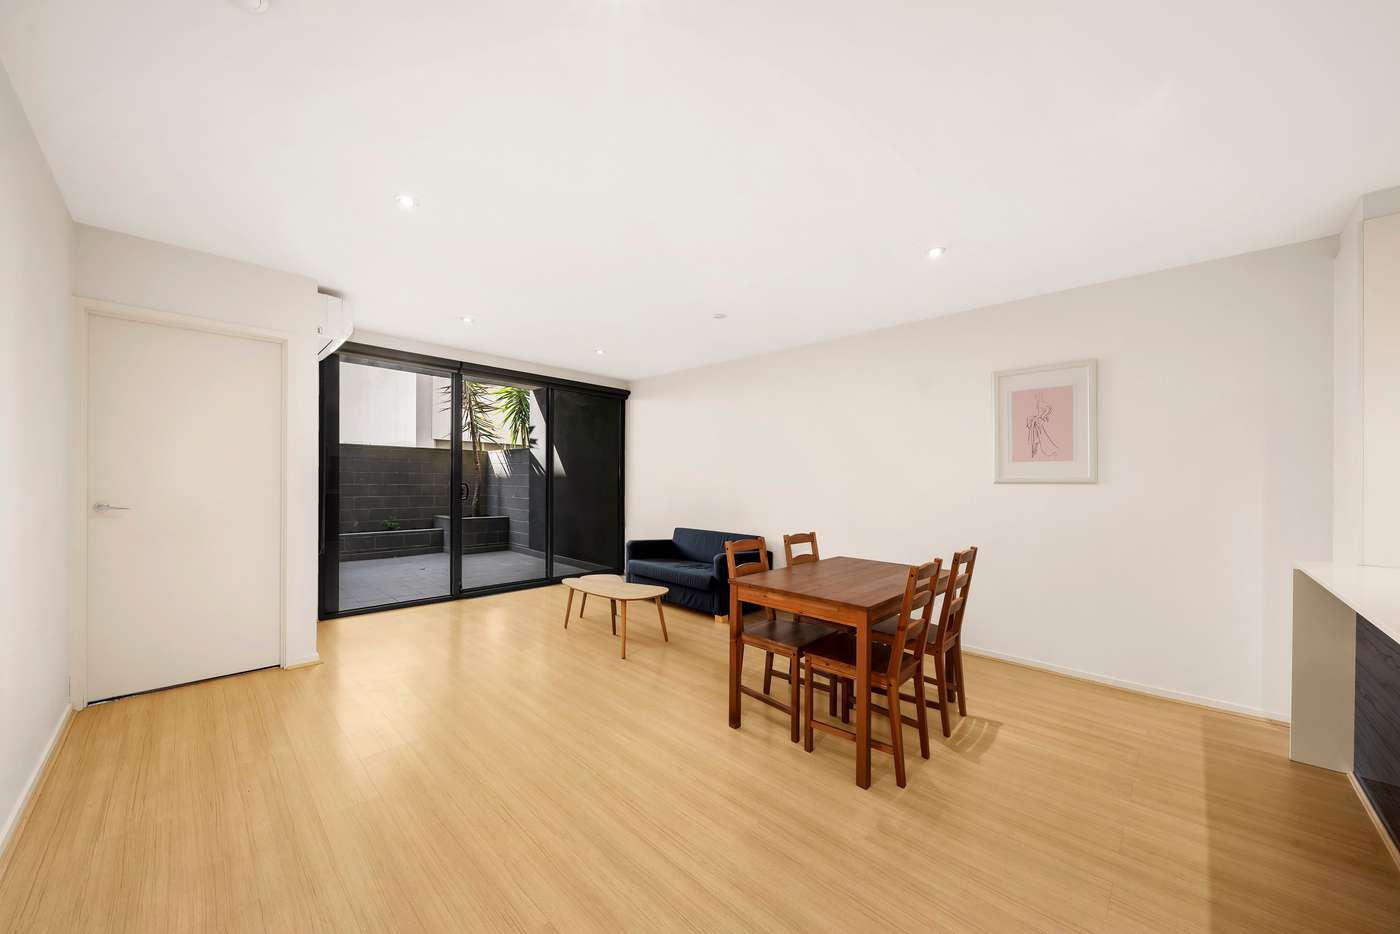 Sixth view of Homely unit listing, 2/2-4 William Street, Murrumbeena VIC 3163